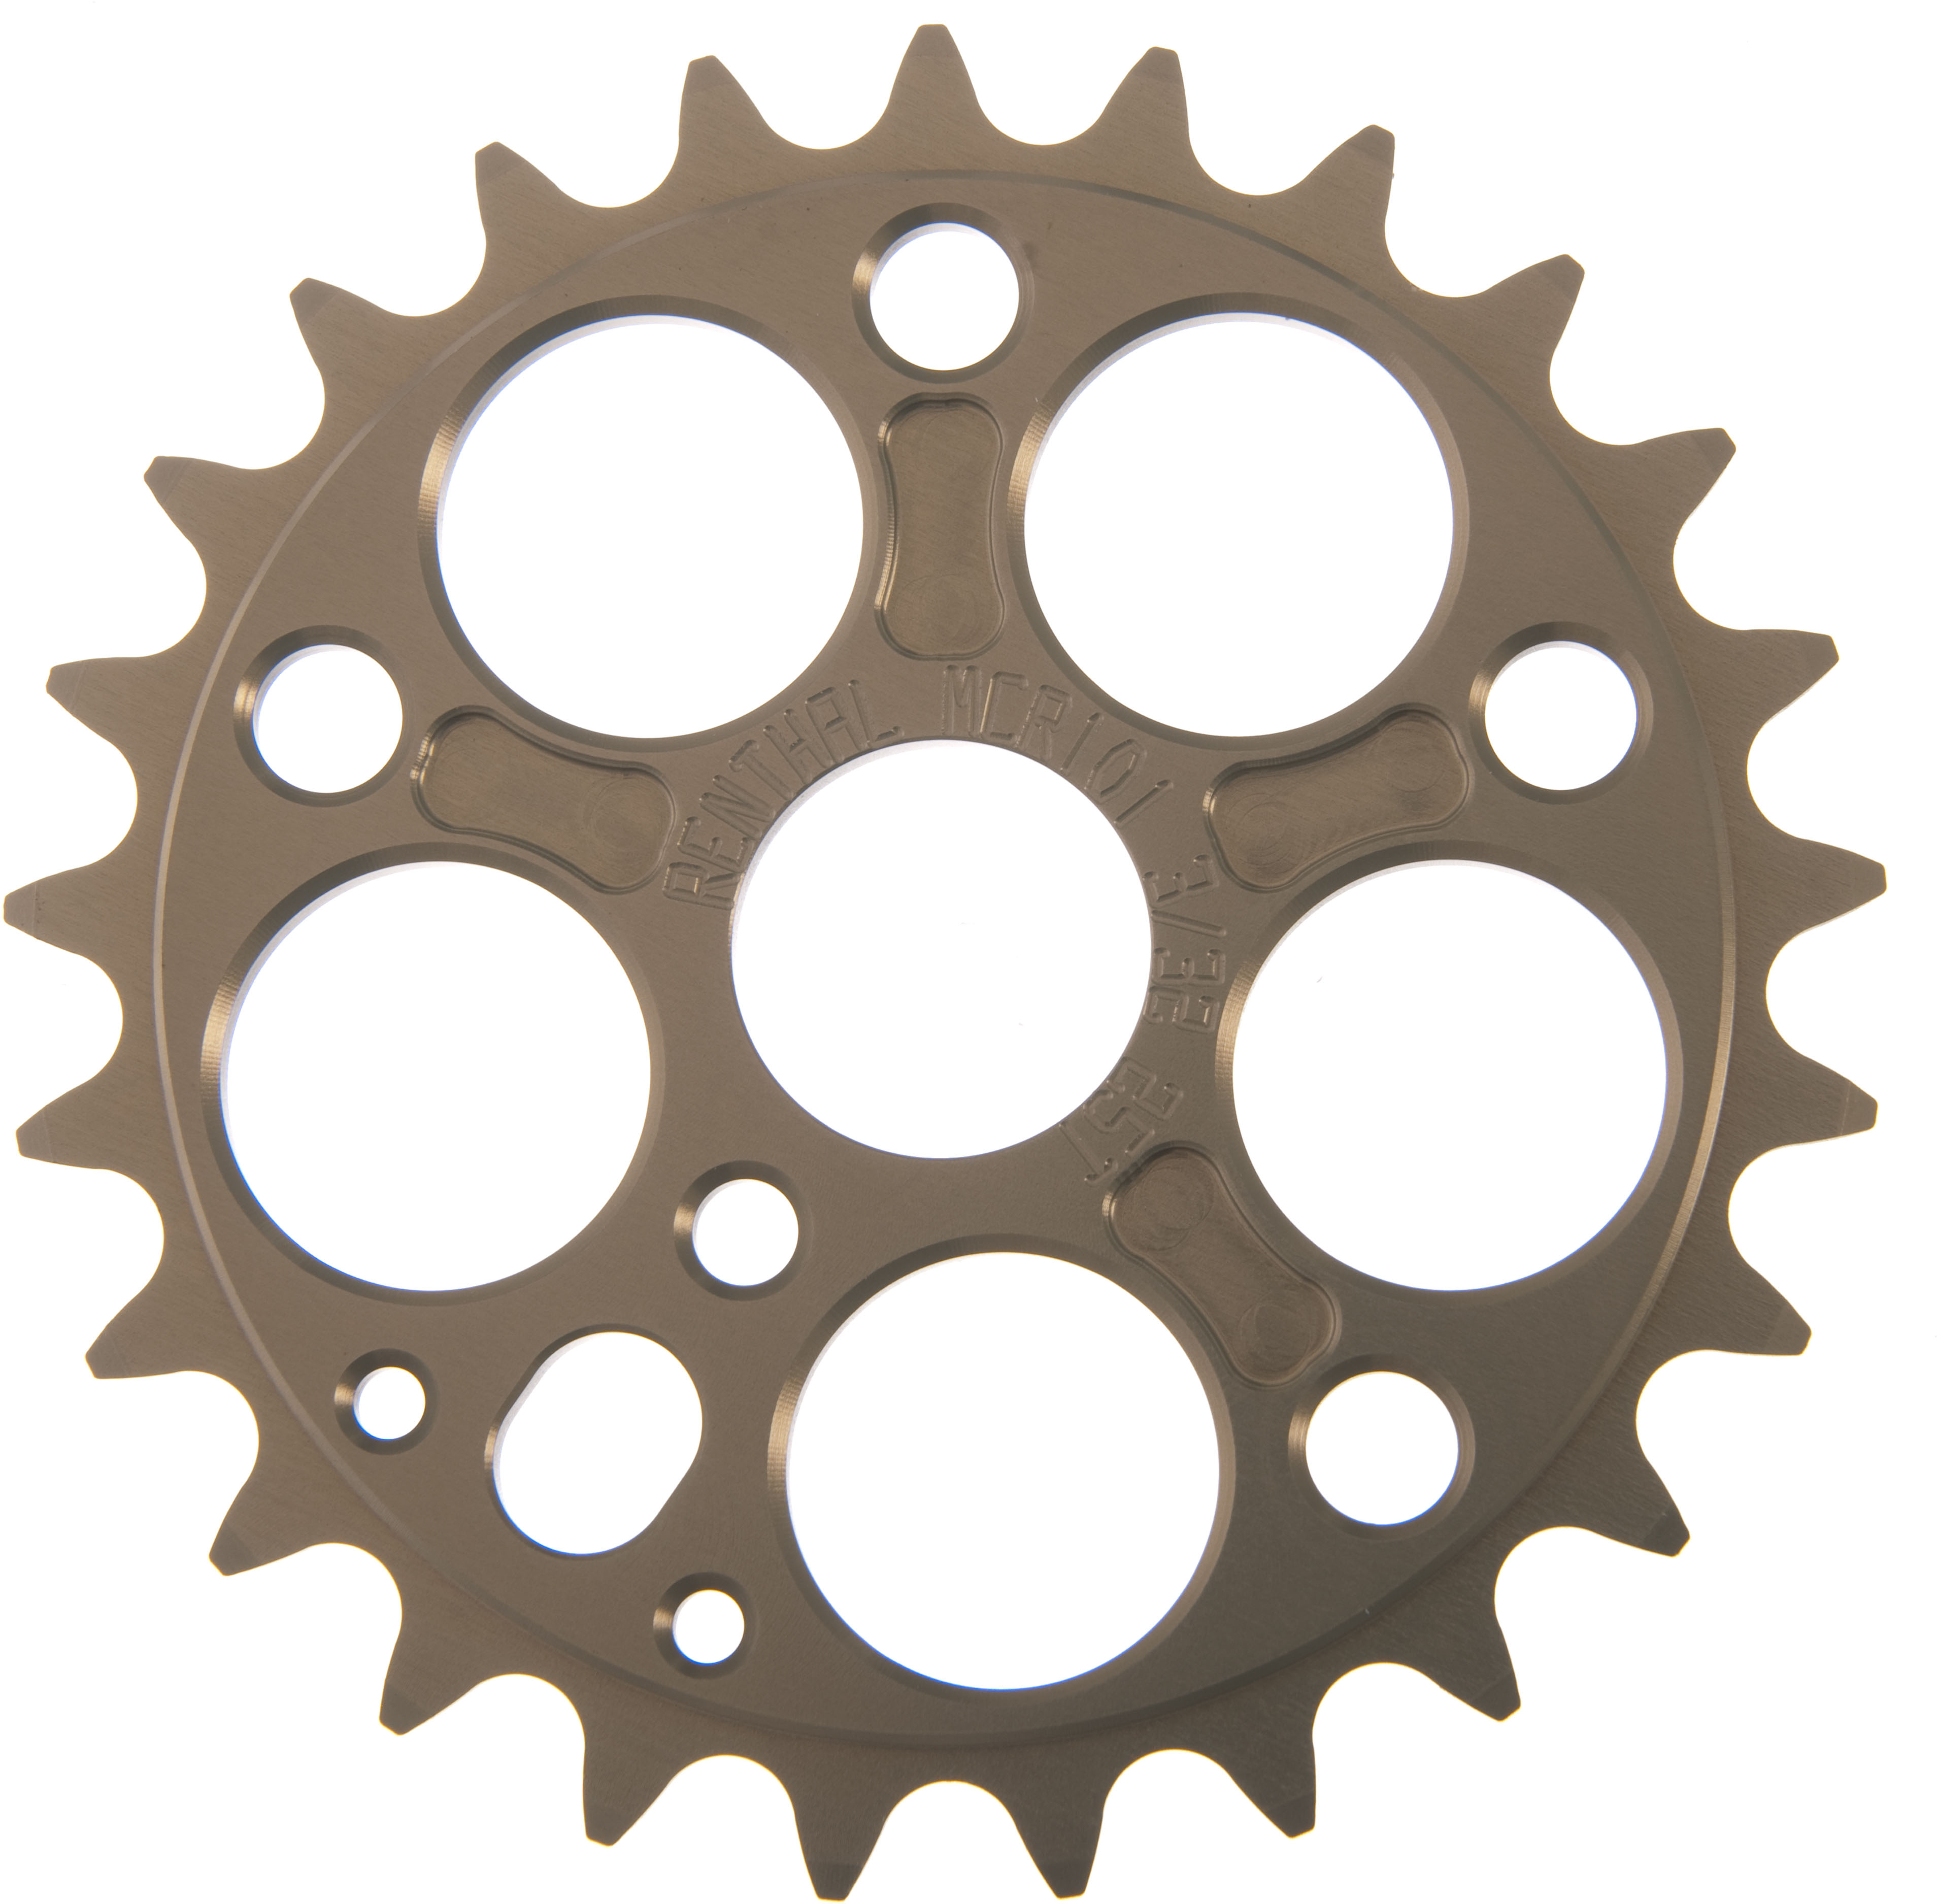 Renthal Ultralite BMX Sprocket | chainrings_component